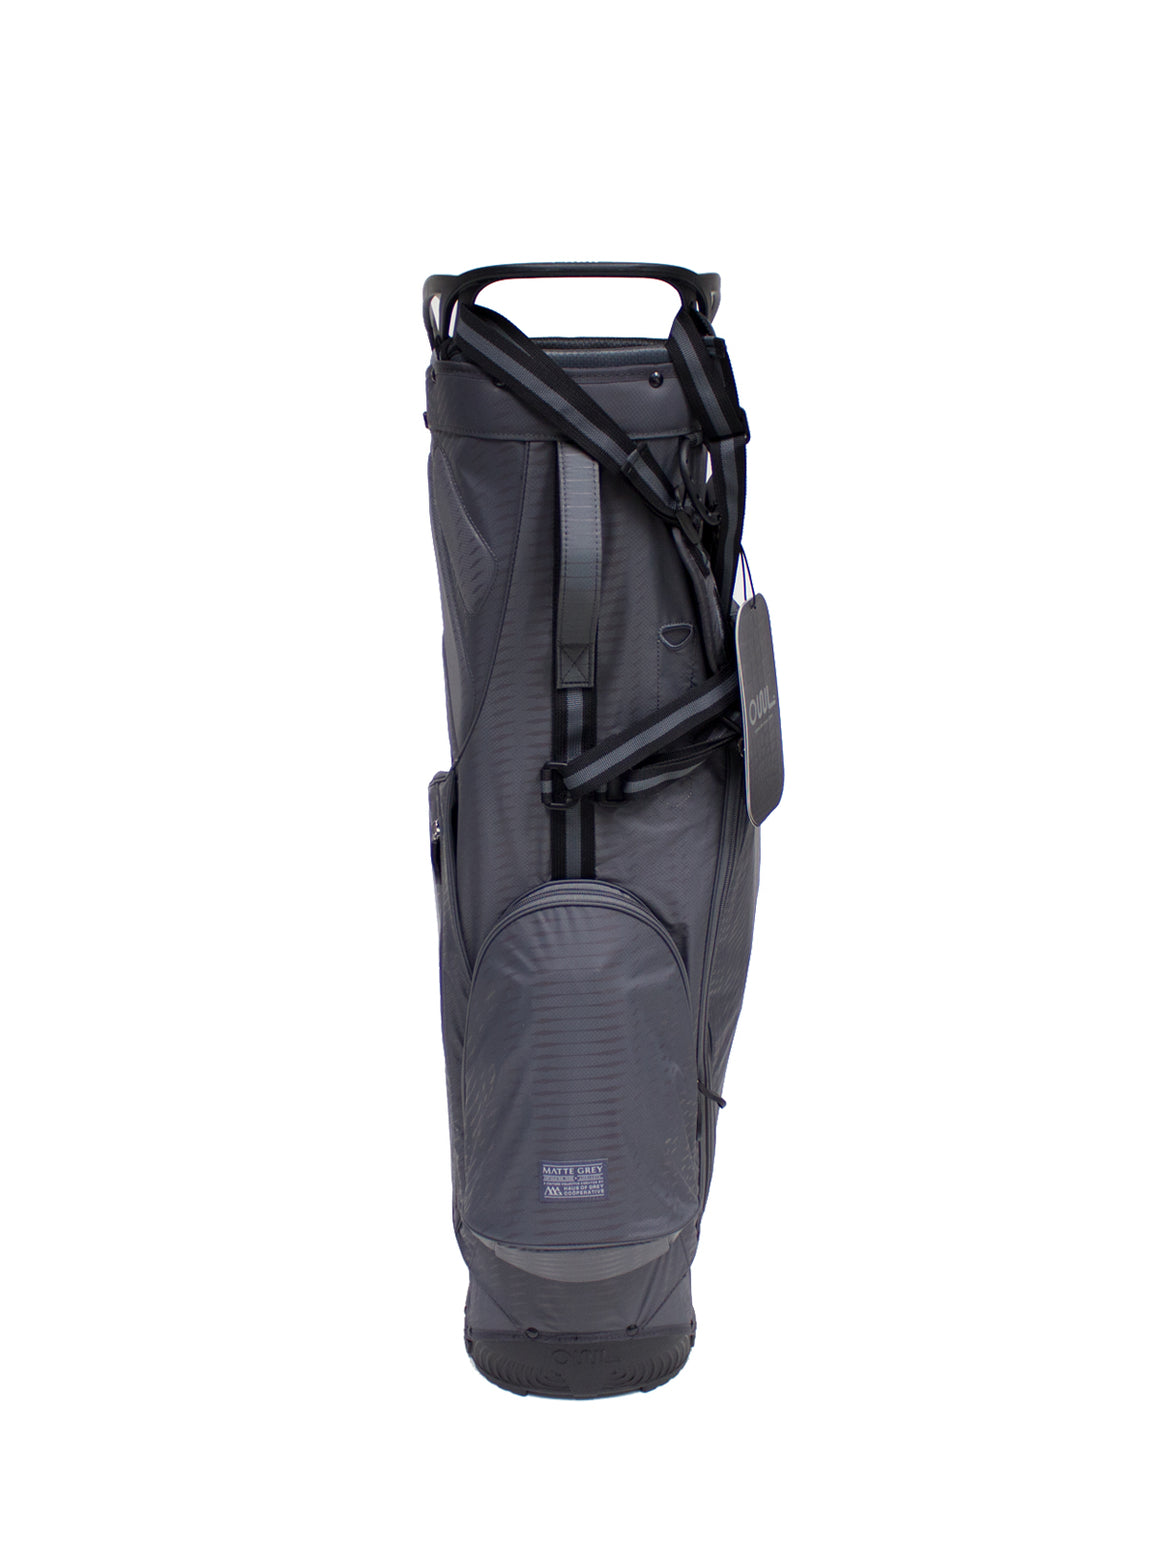 Matte Grey x OUUL Python Golf Bag